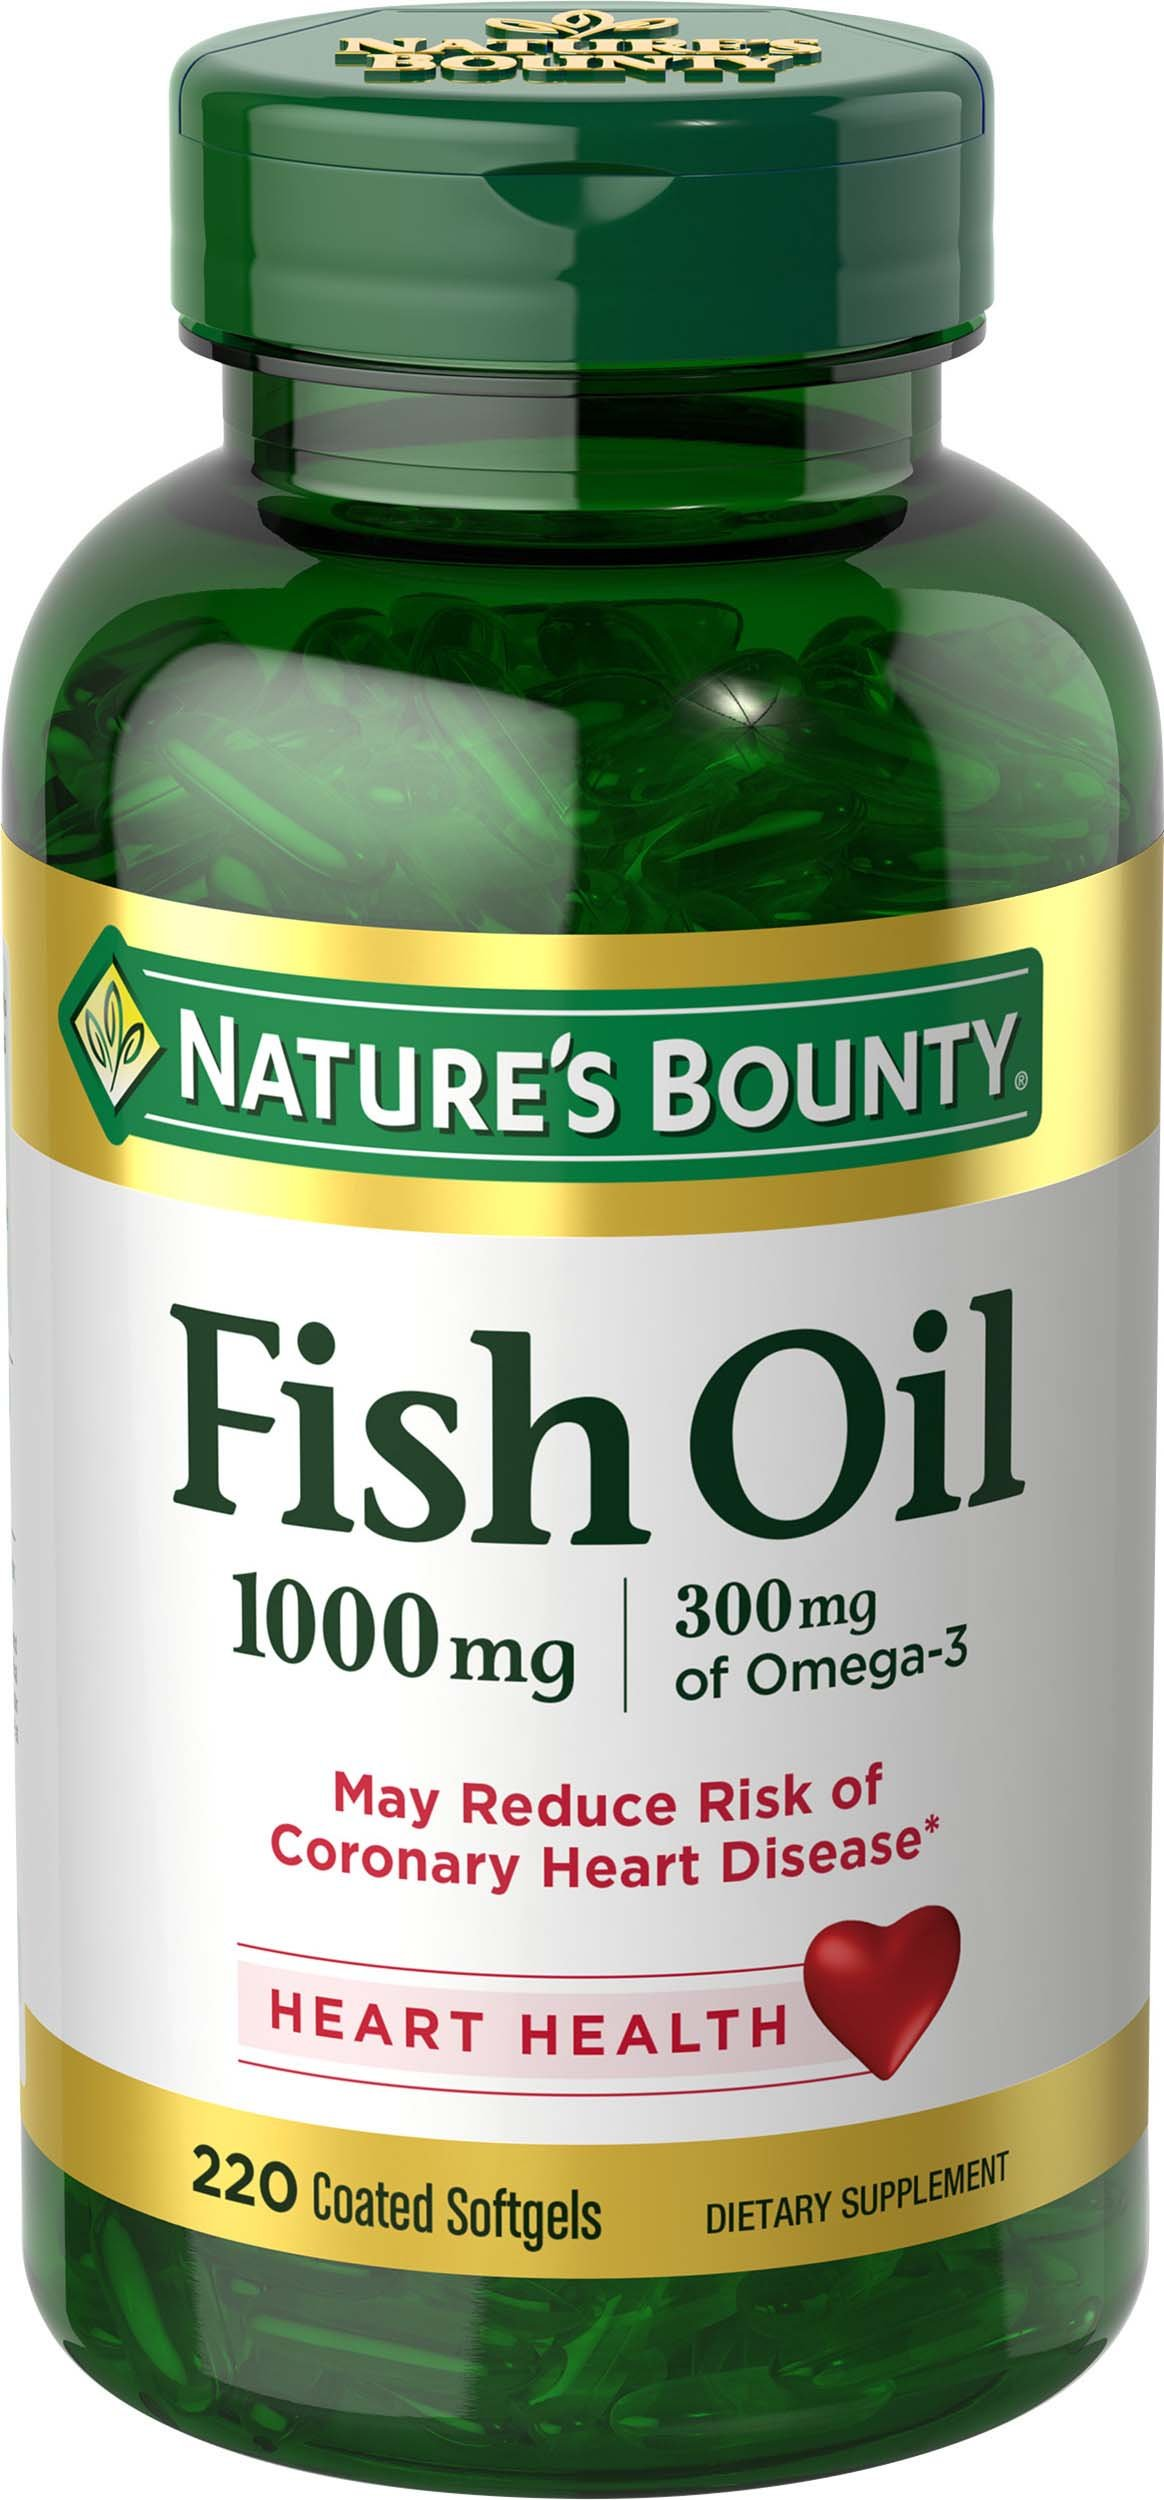 Nature's Bounty Fish Oil 1000 mg Coated Softgels 220 ea by Nature's Bounty